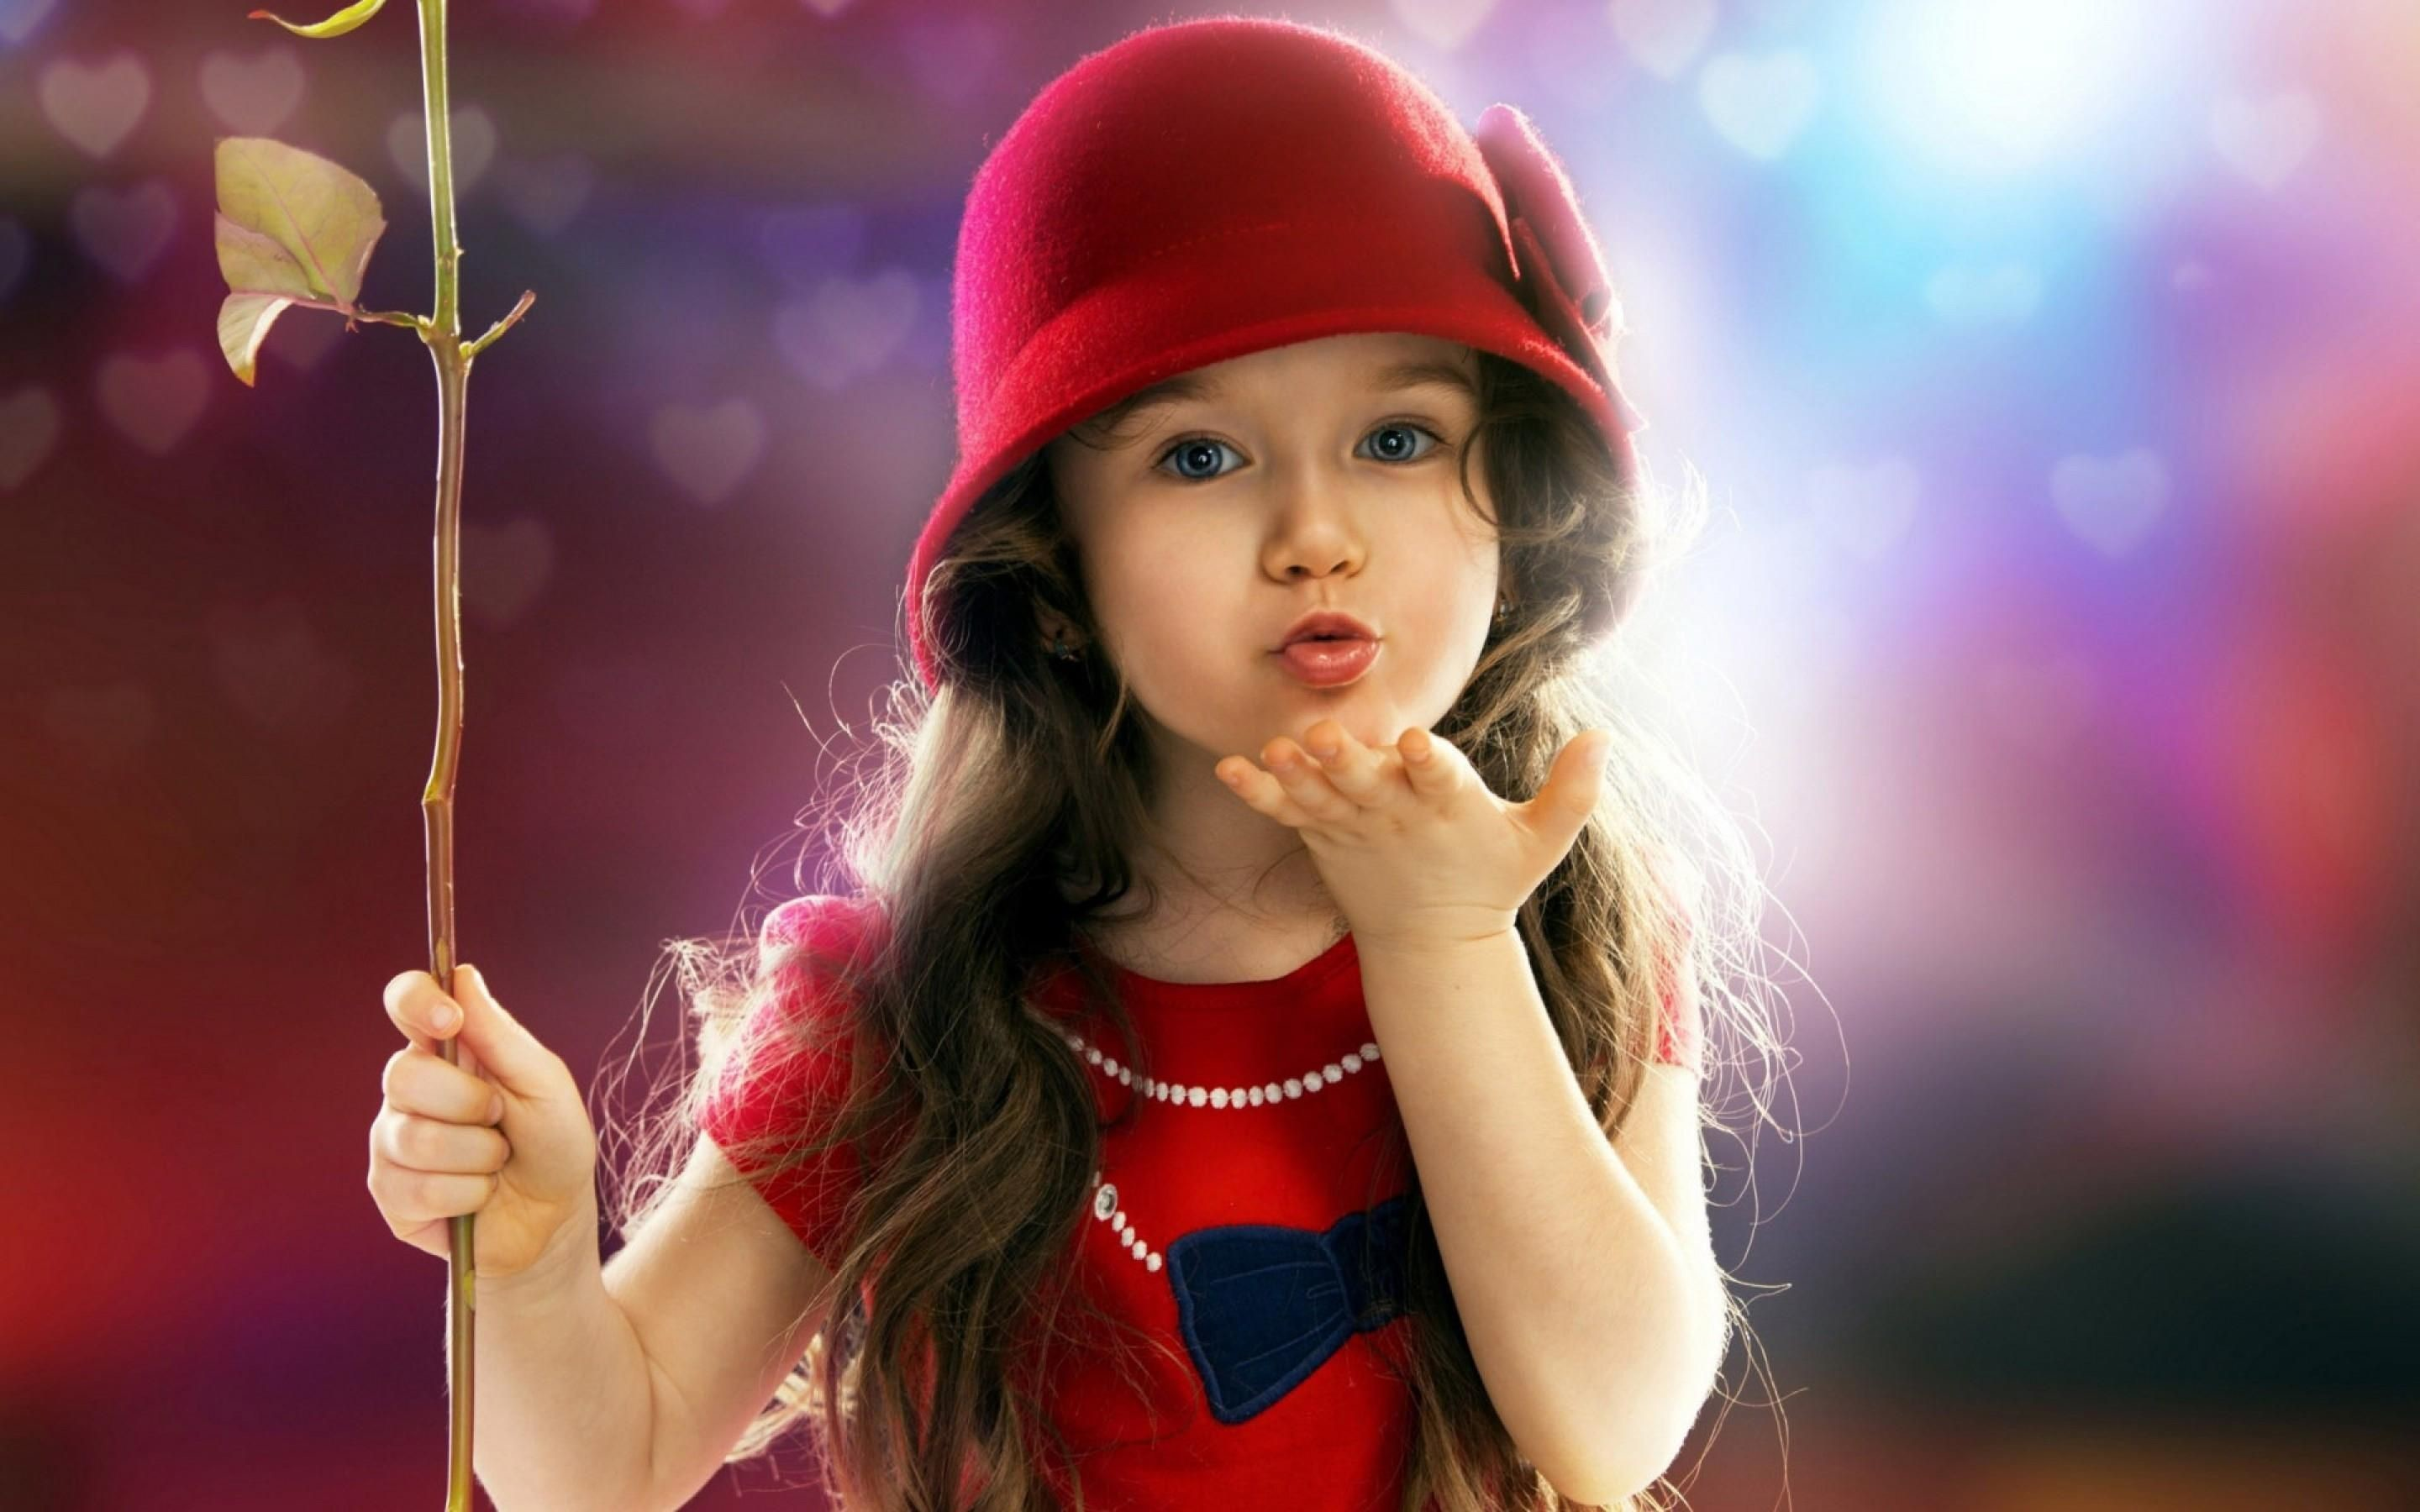 Res: 2880x1800, 215 Little Girl HD Wallpapers | Backgrounds - Wallpaper Abyss